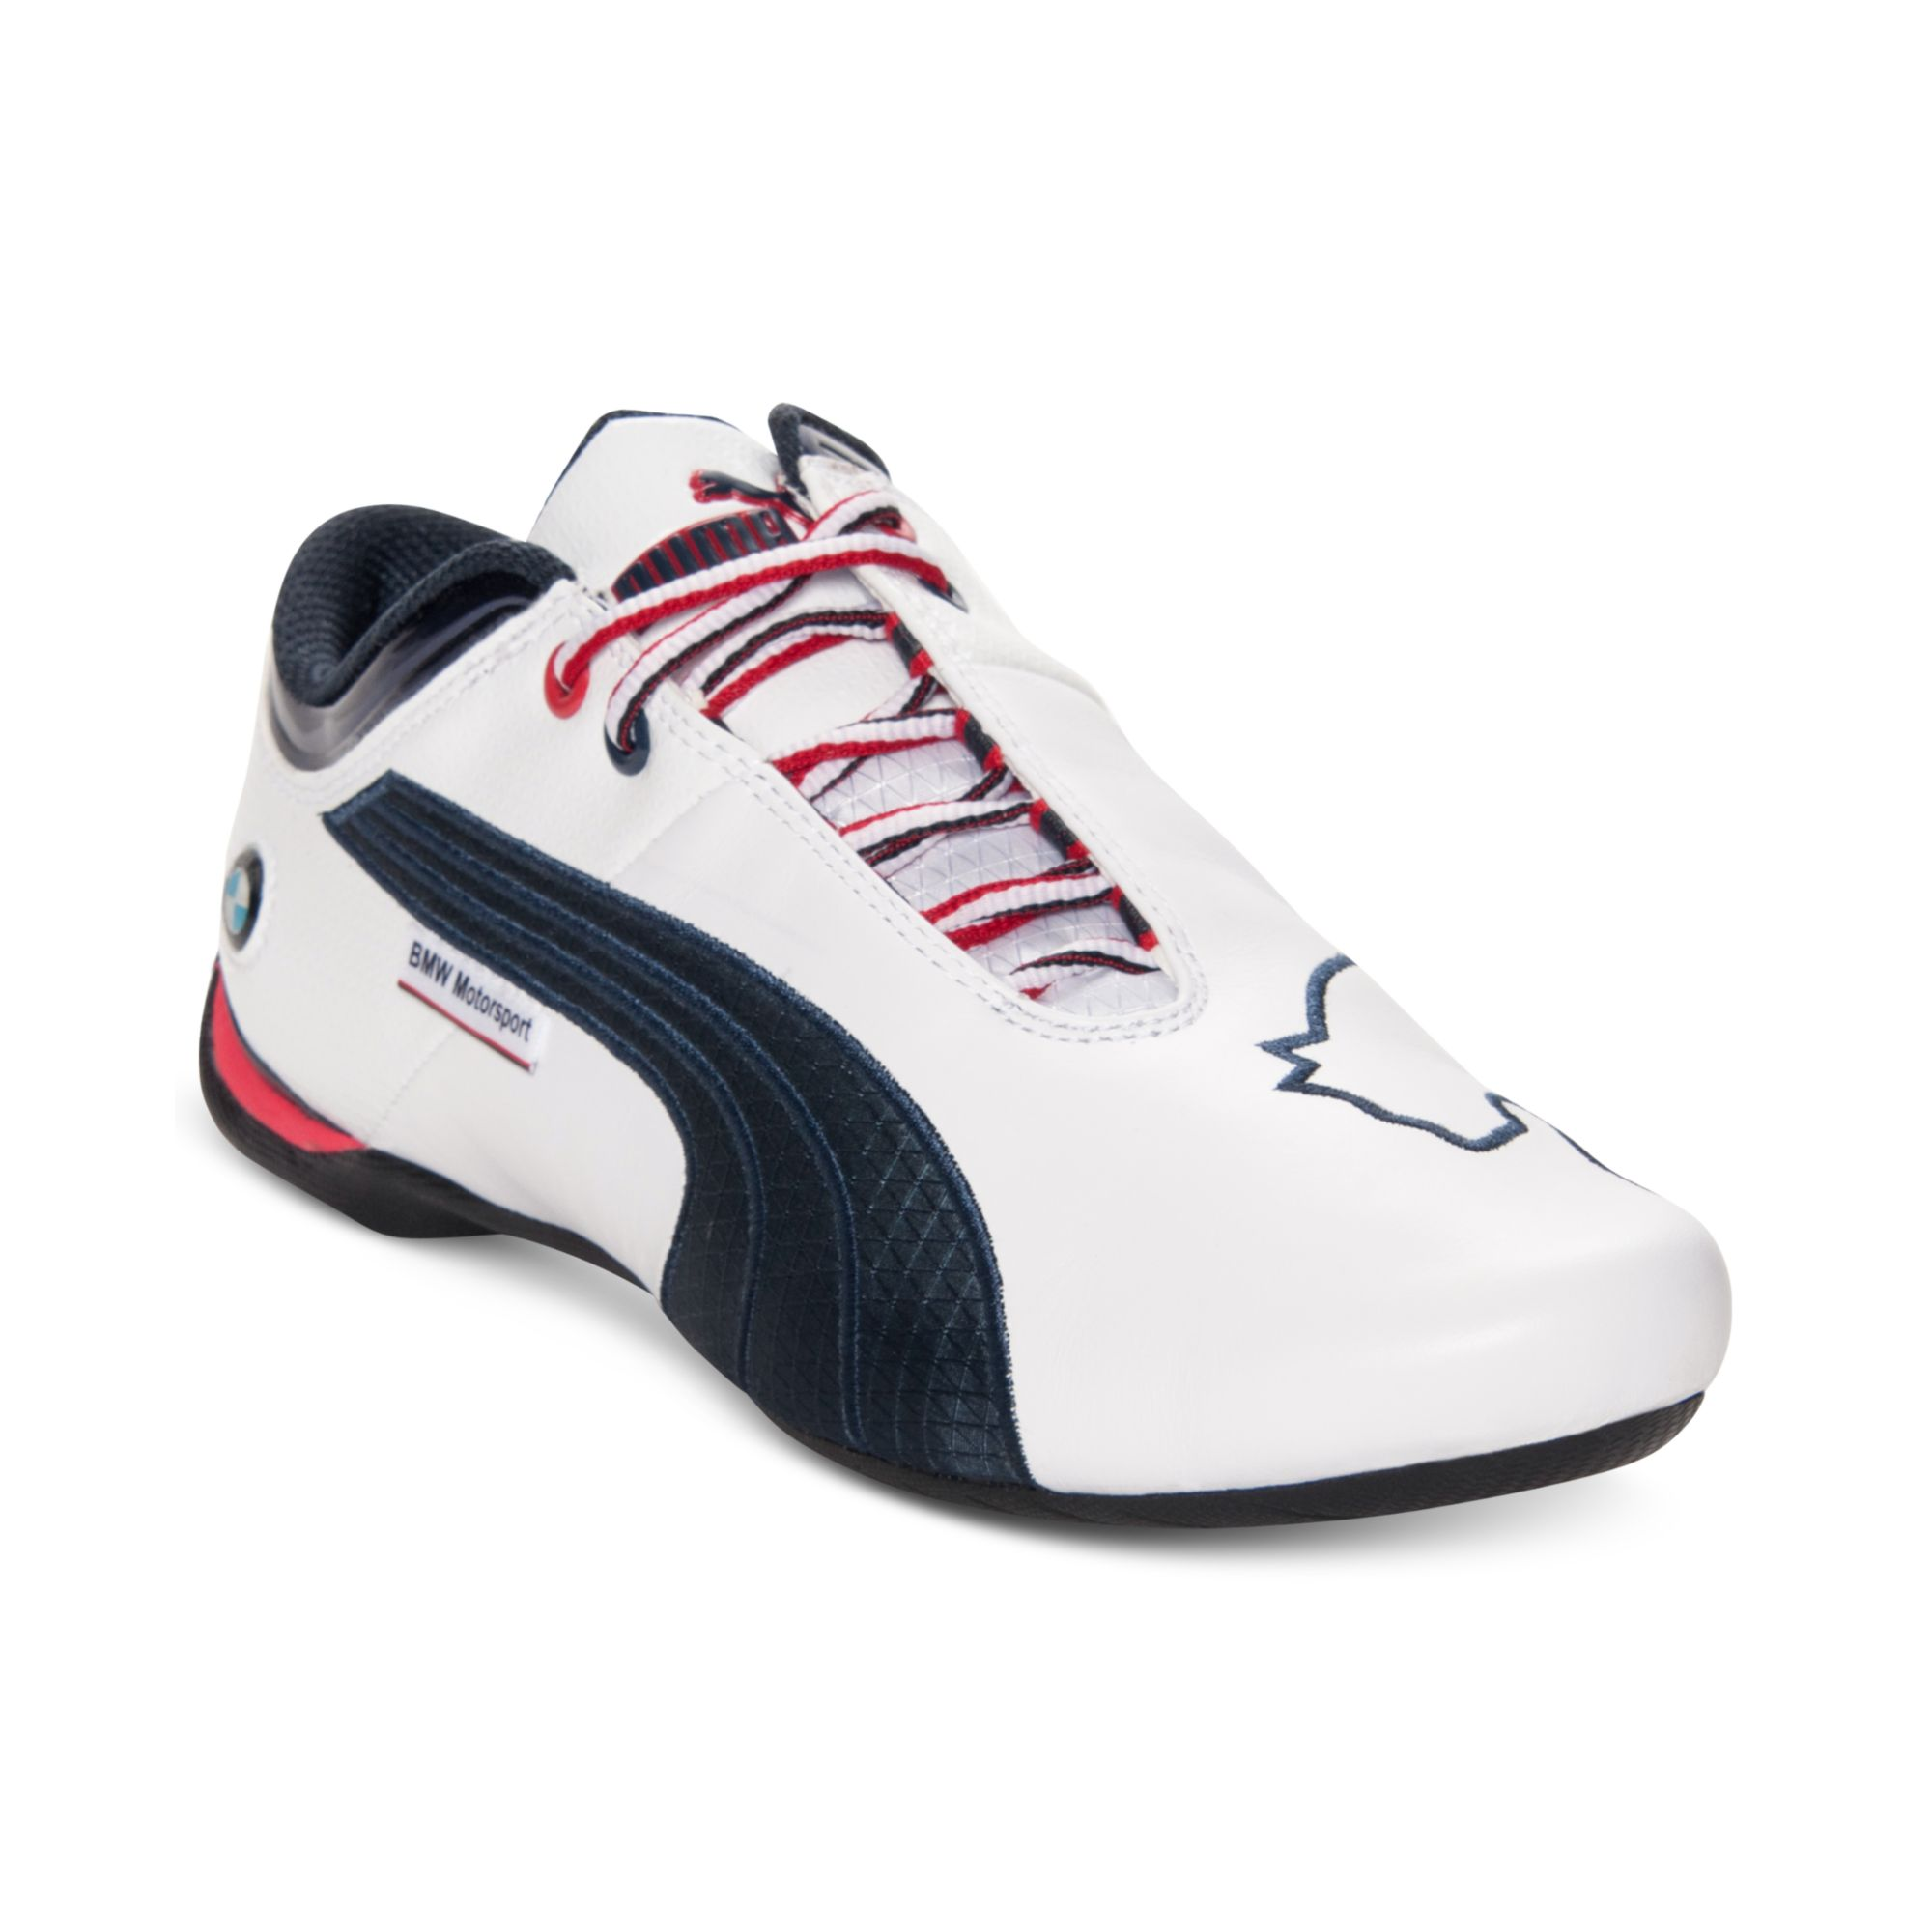 3827eaba797d Gallery. Previously sold at  Macy s · Men s Puma Bmw Men s Slip On Sneakers  ...